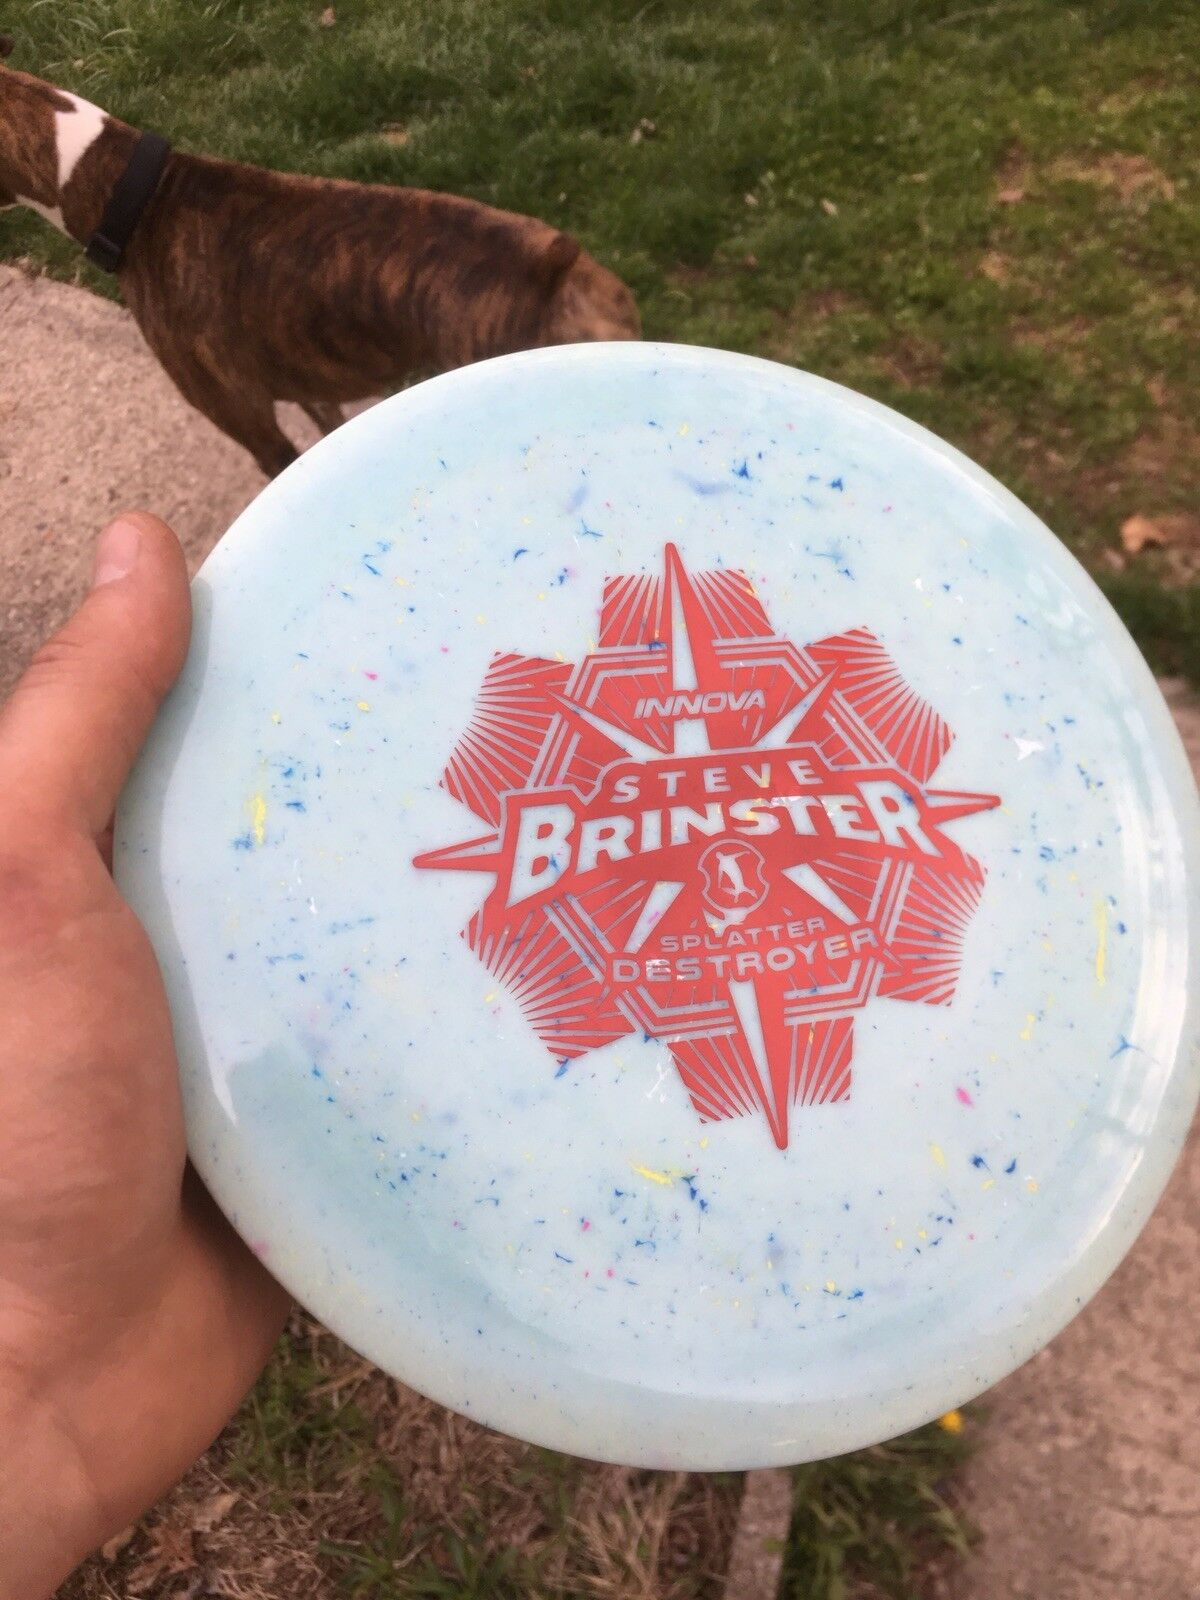 Innova destroyer Brinster Tour Tour Tour Series beb303